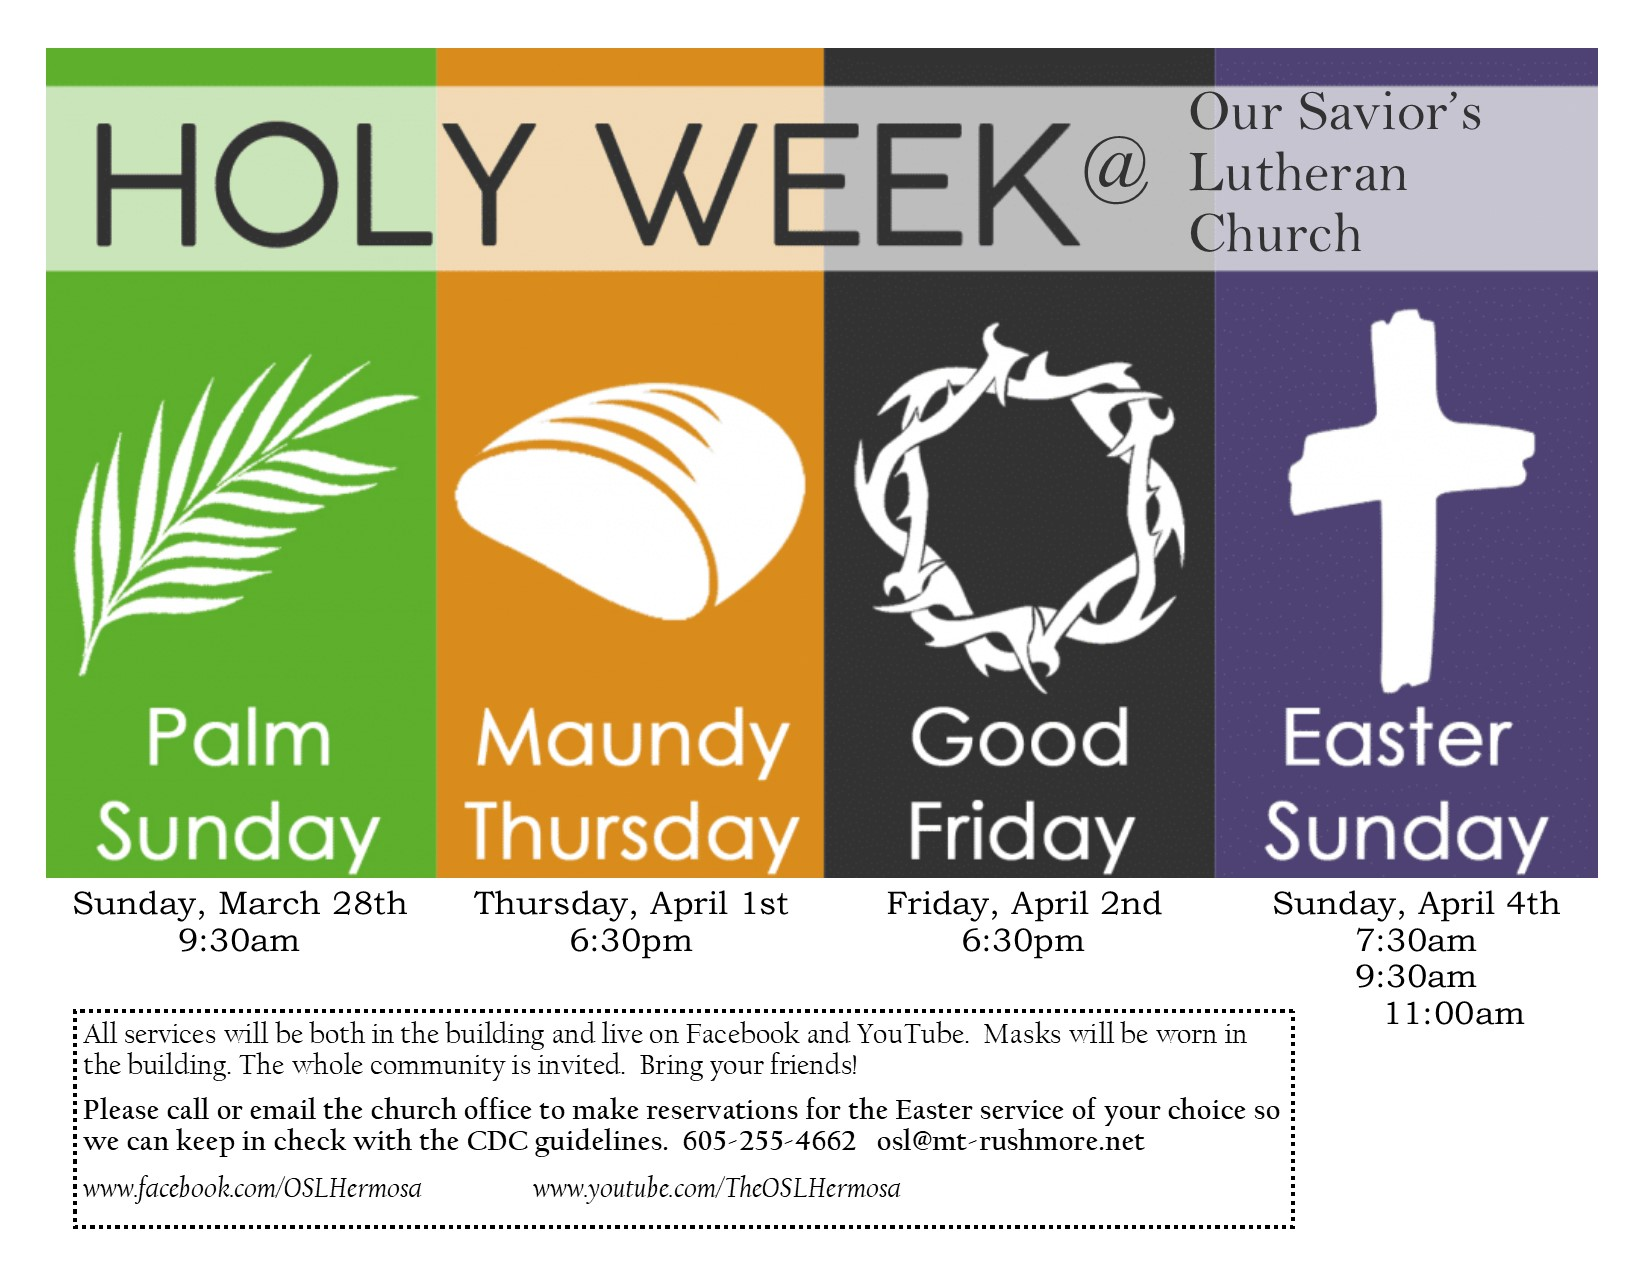 Bulletin for March 28th- Palm Sunday